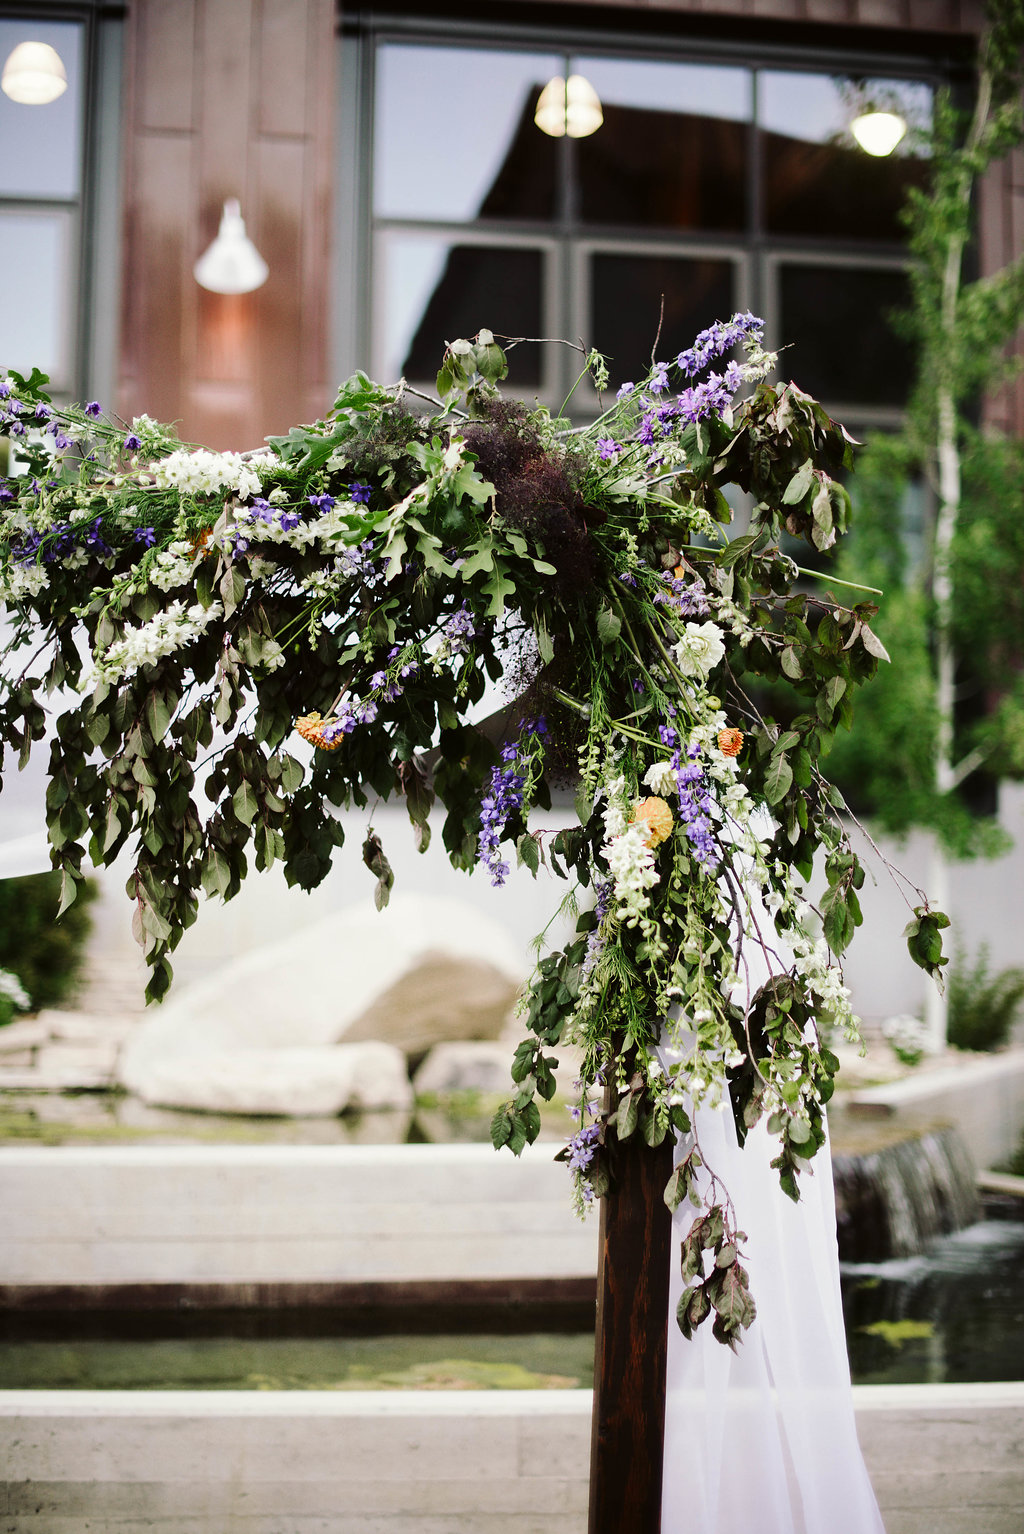 Rustic Wedding with Wildflowers | Park City Summer Wedding | High West Distillery Wedding | Michelle Leo Events | Utah Event Planner | Haley Nord Photography